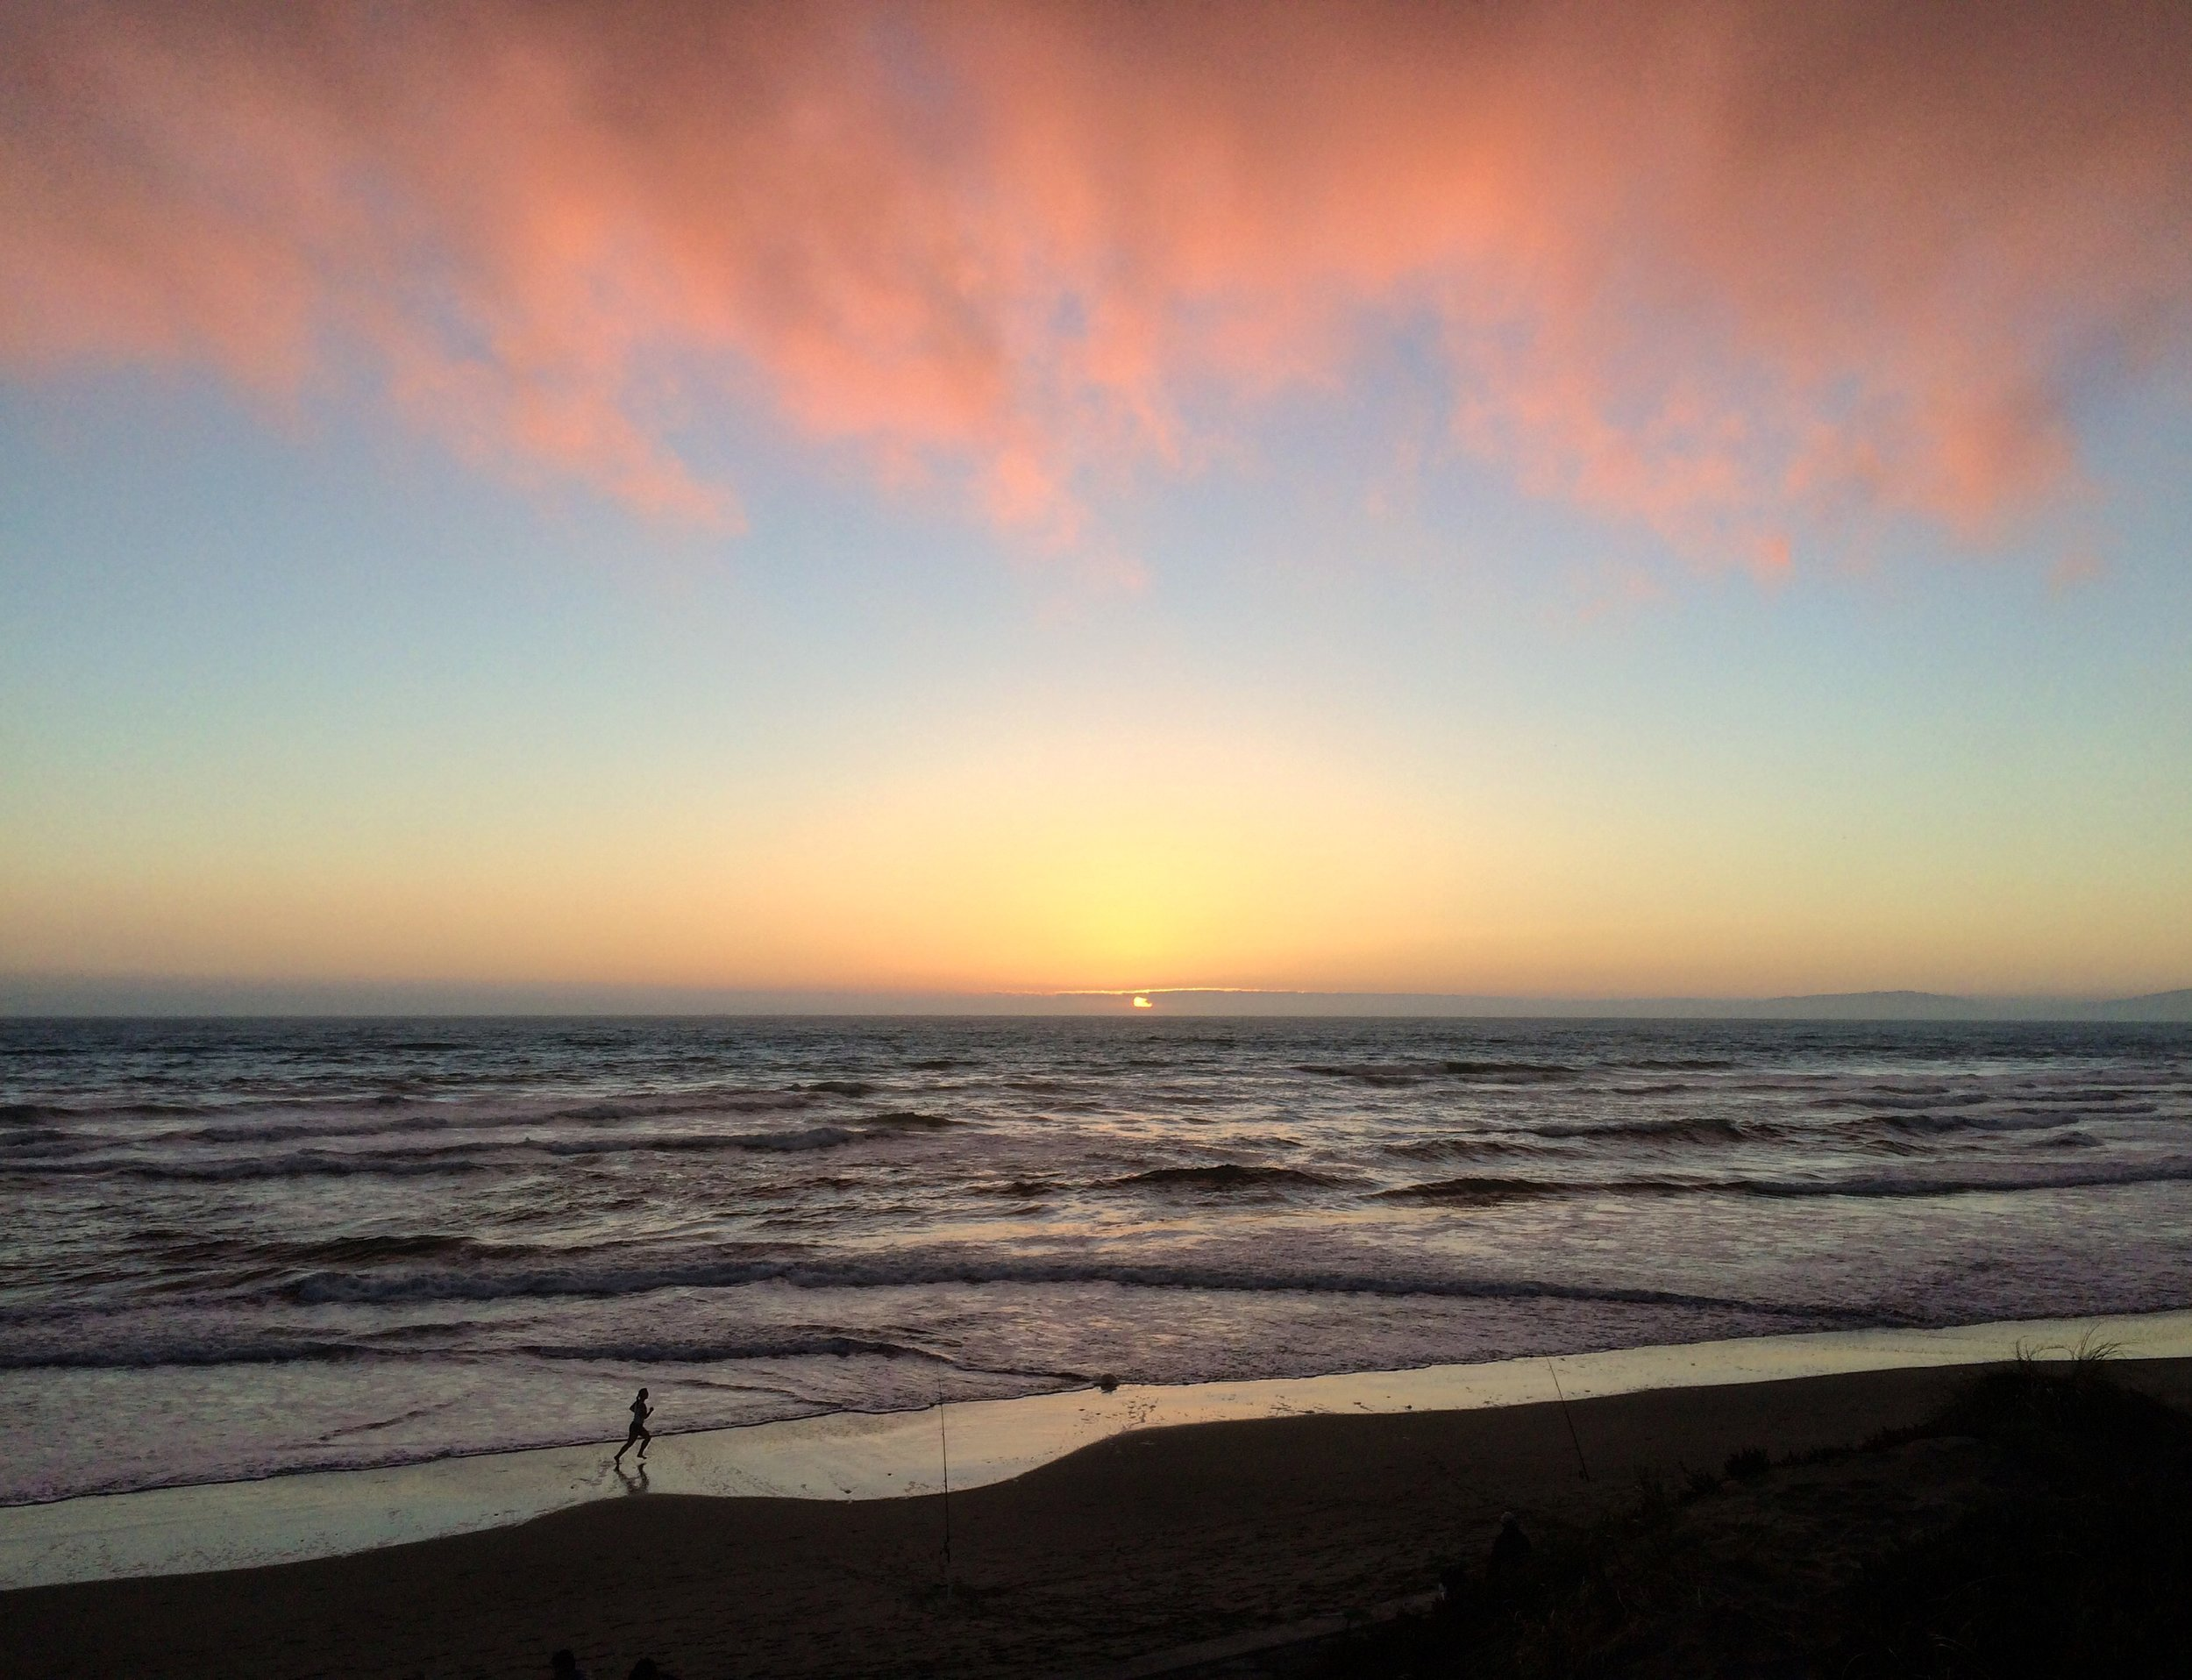 The SF studio is a stone's throw from Ocean Beach! Enjoy a stroll on the beach before or after your lesson in SF.